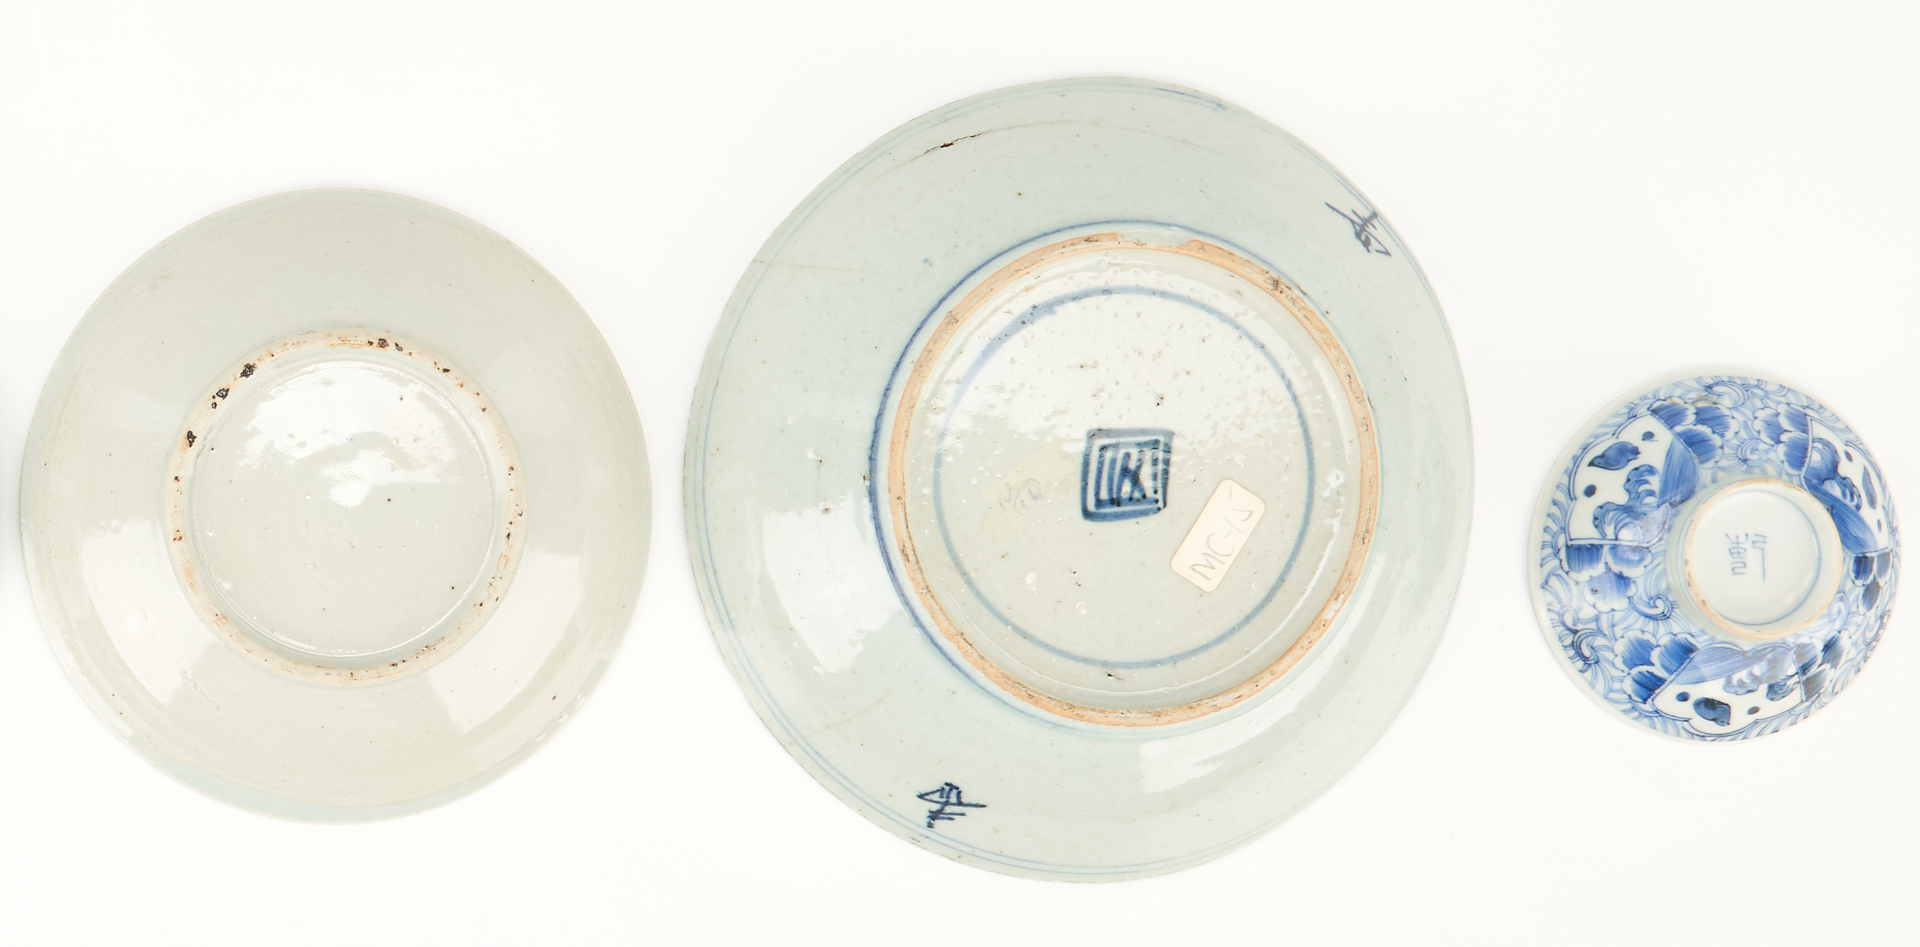 Lot 1177: 12 Pcs. Chinese Blue and White Porcelain, incl. Ginger Jars